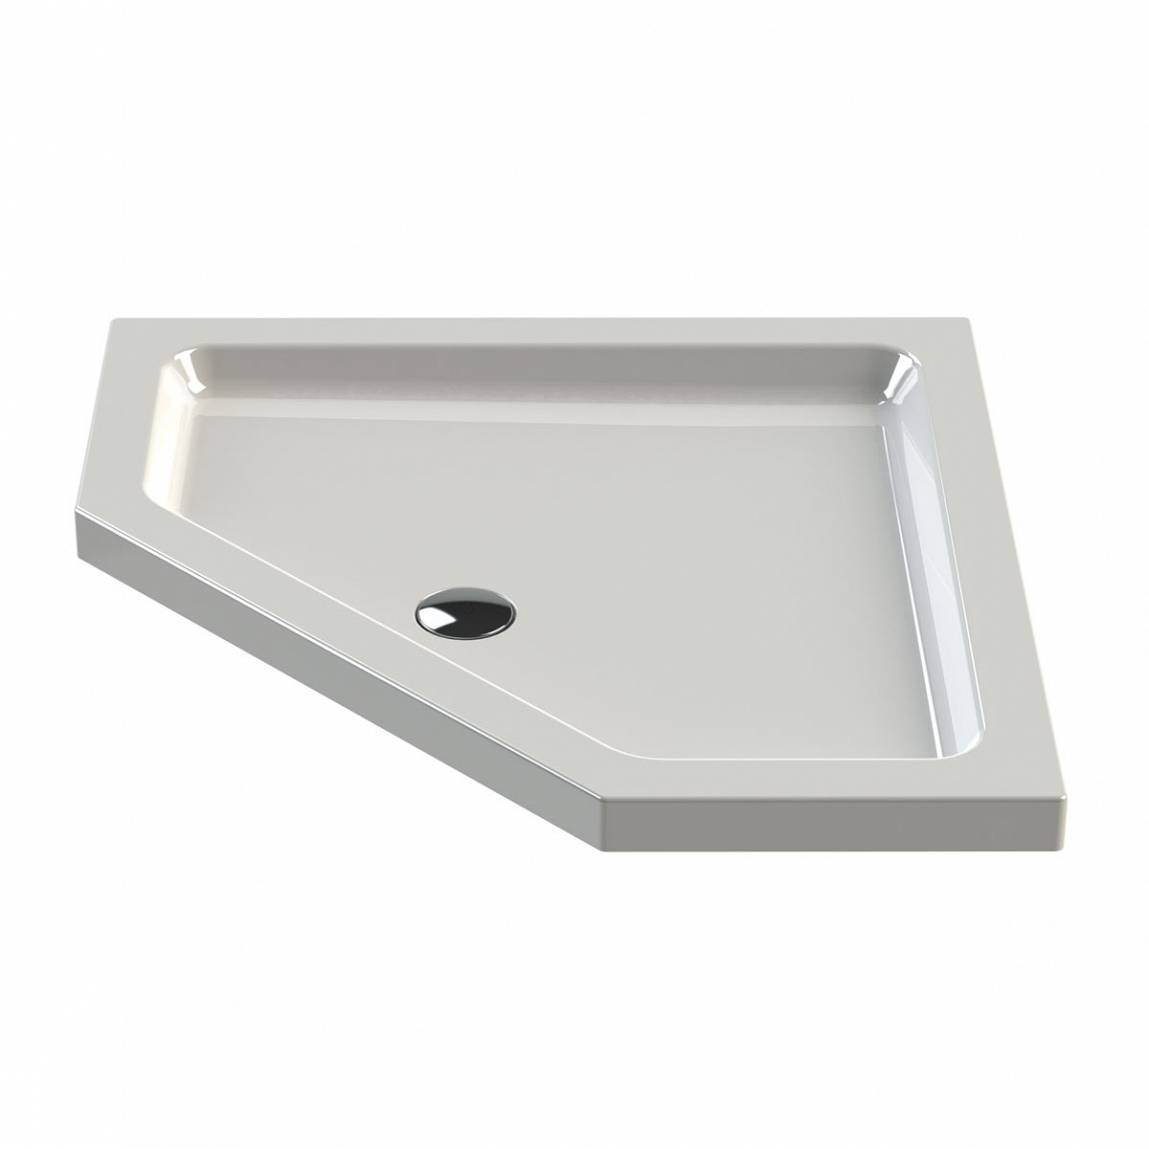 Image of Pentagonal Stone Shower Tray 900 x 900